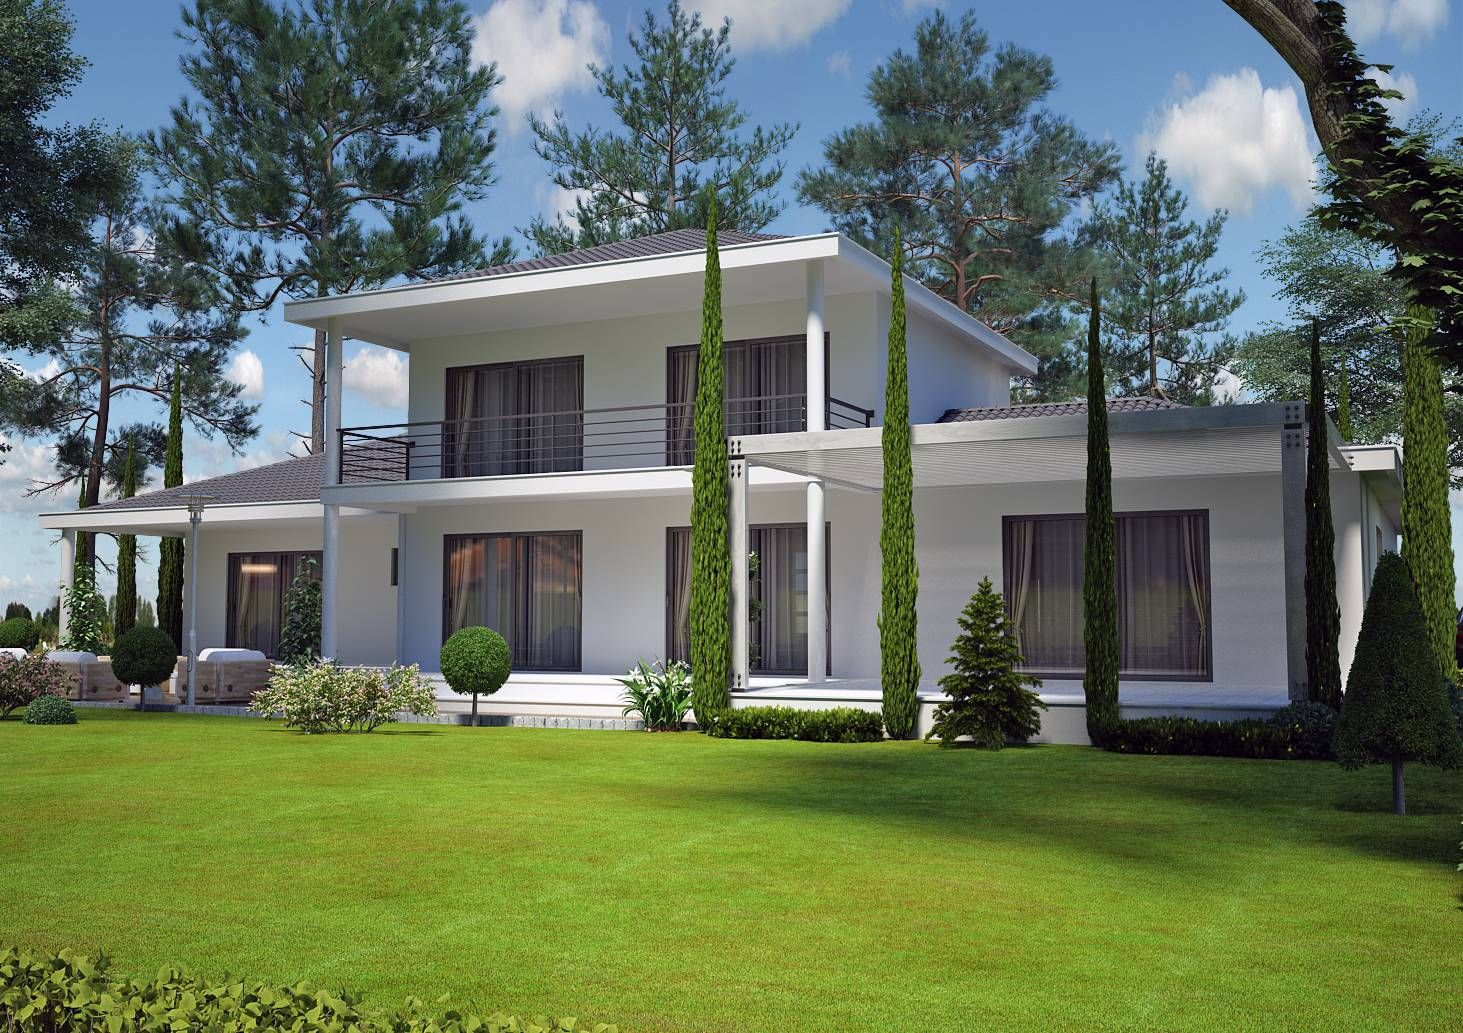 Villa contemporaine 150 m2 etage mod le pinede salon for Des maisons modernes